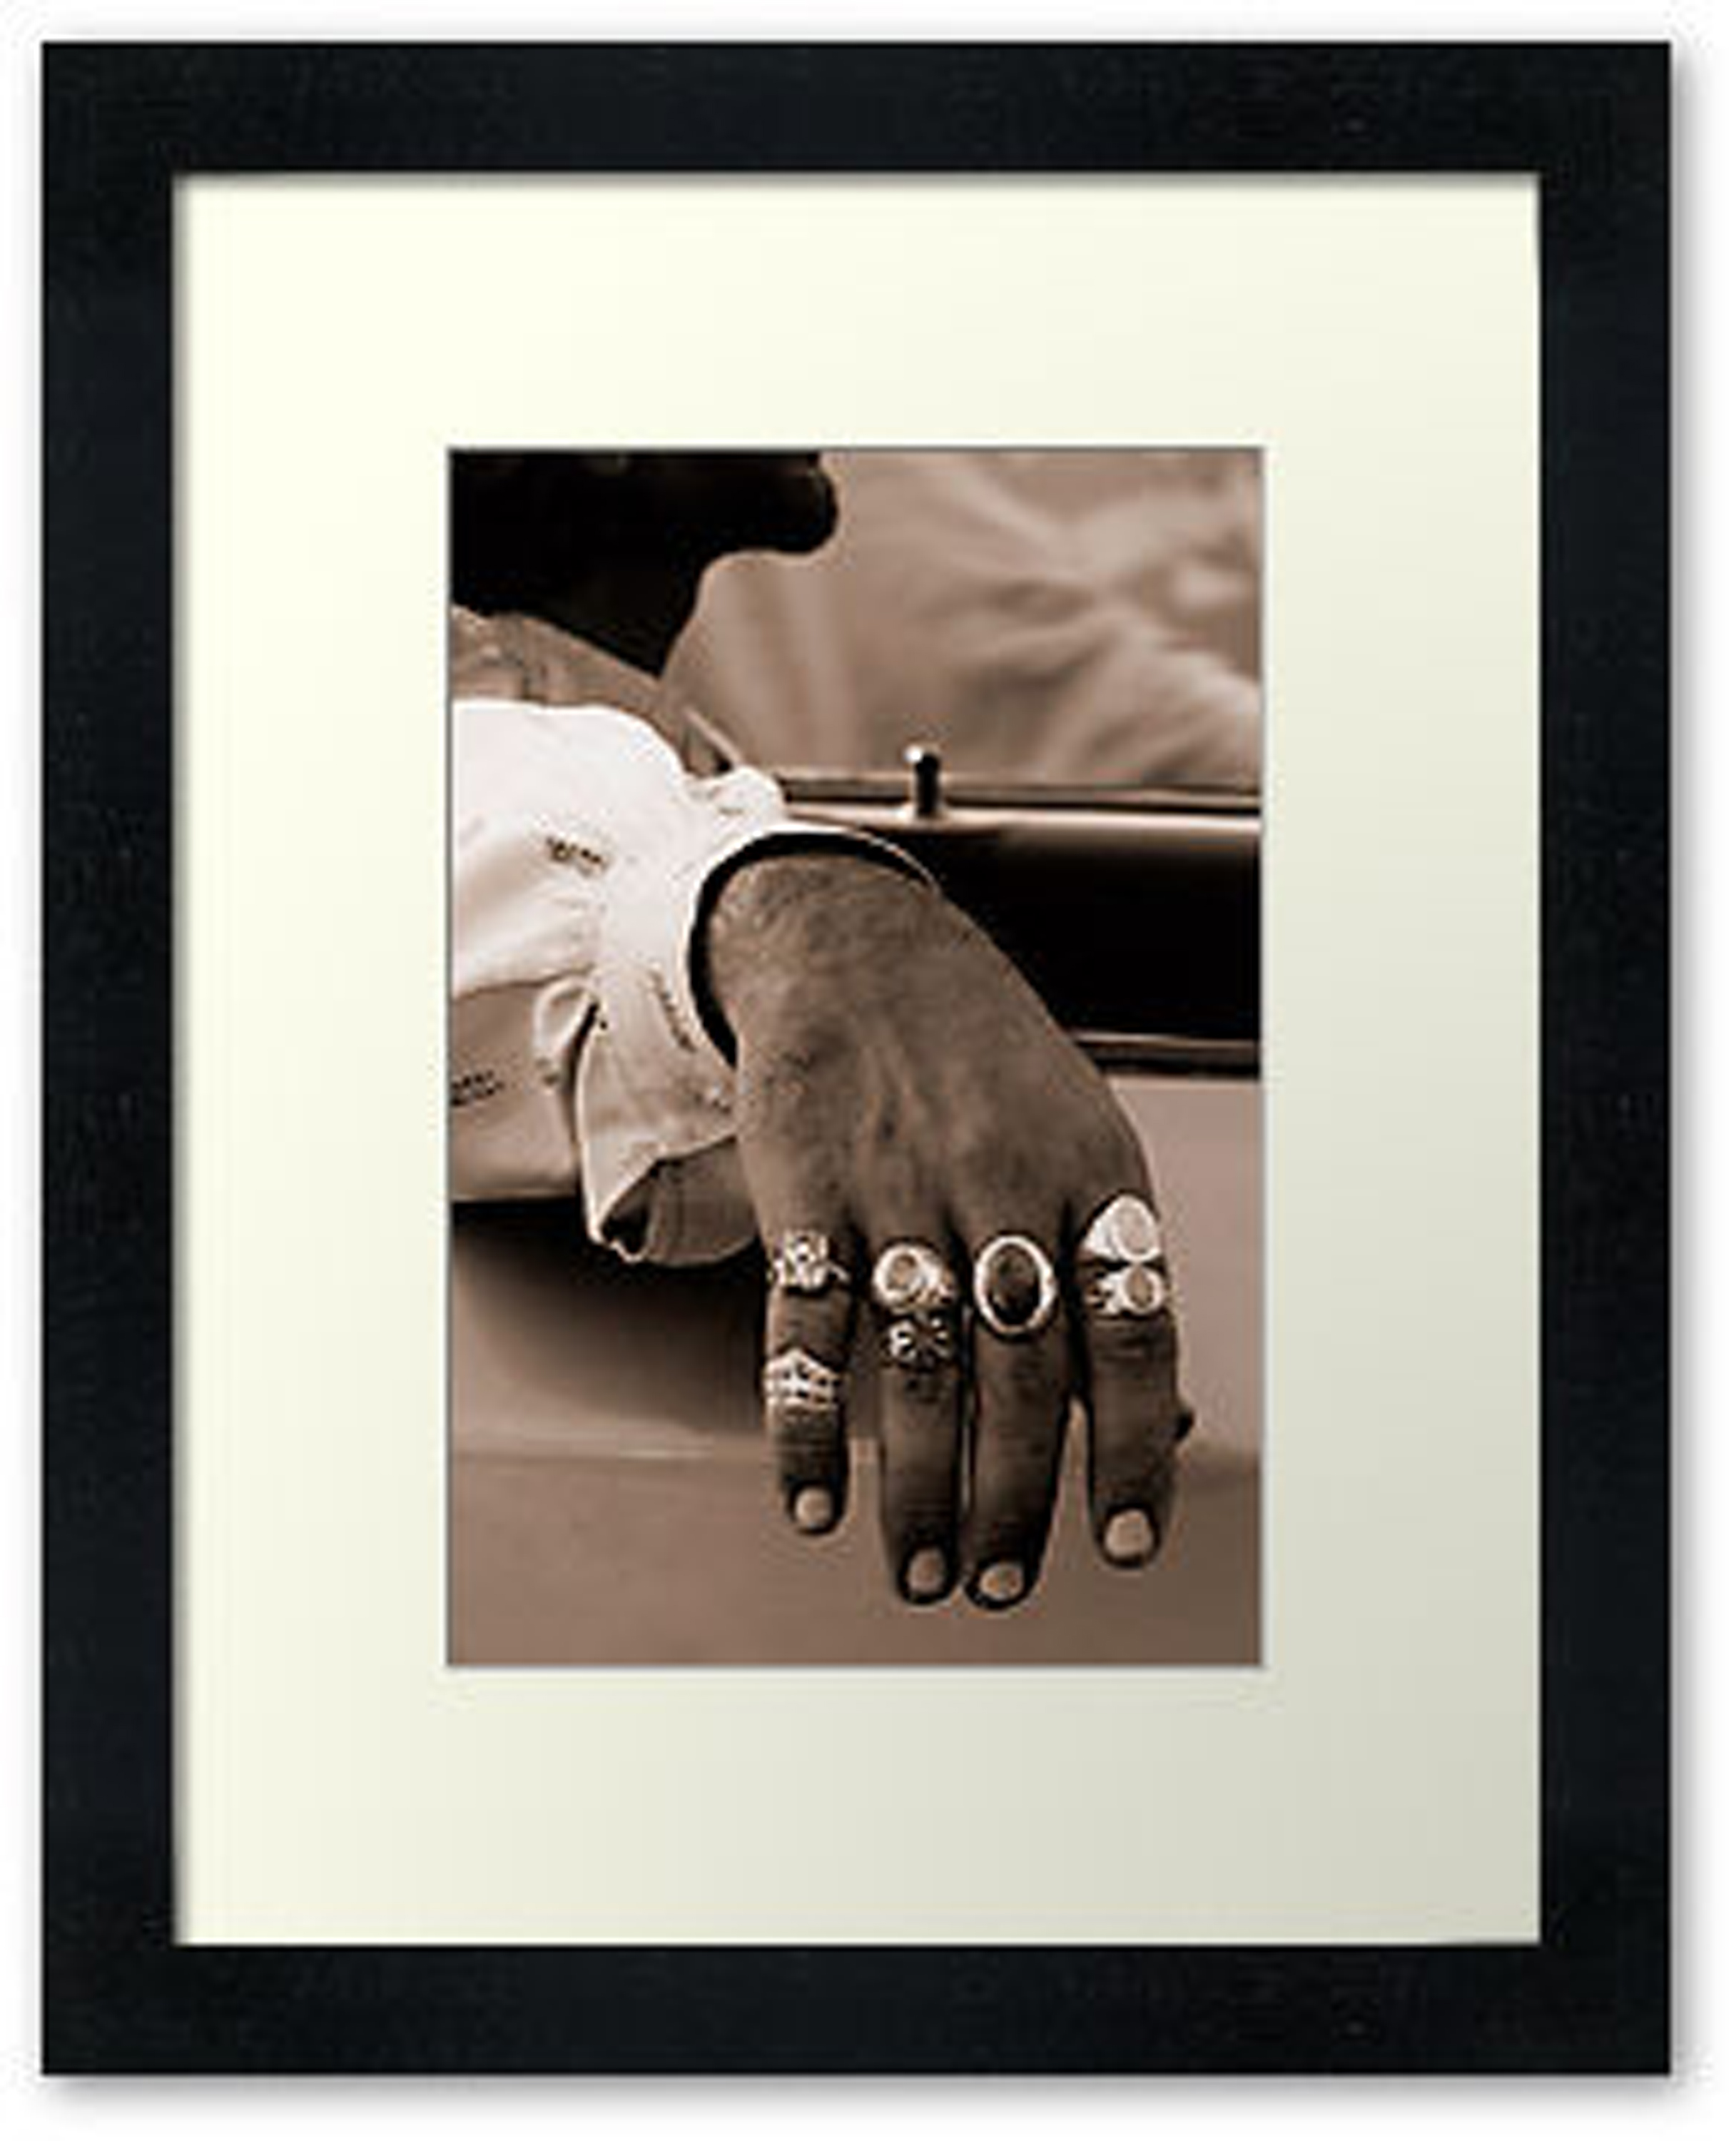 Rings, Hena Tayab Photographic Fine Art Print in Limited Edition of 50, framed and matted